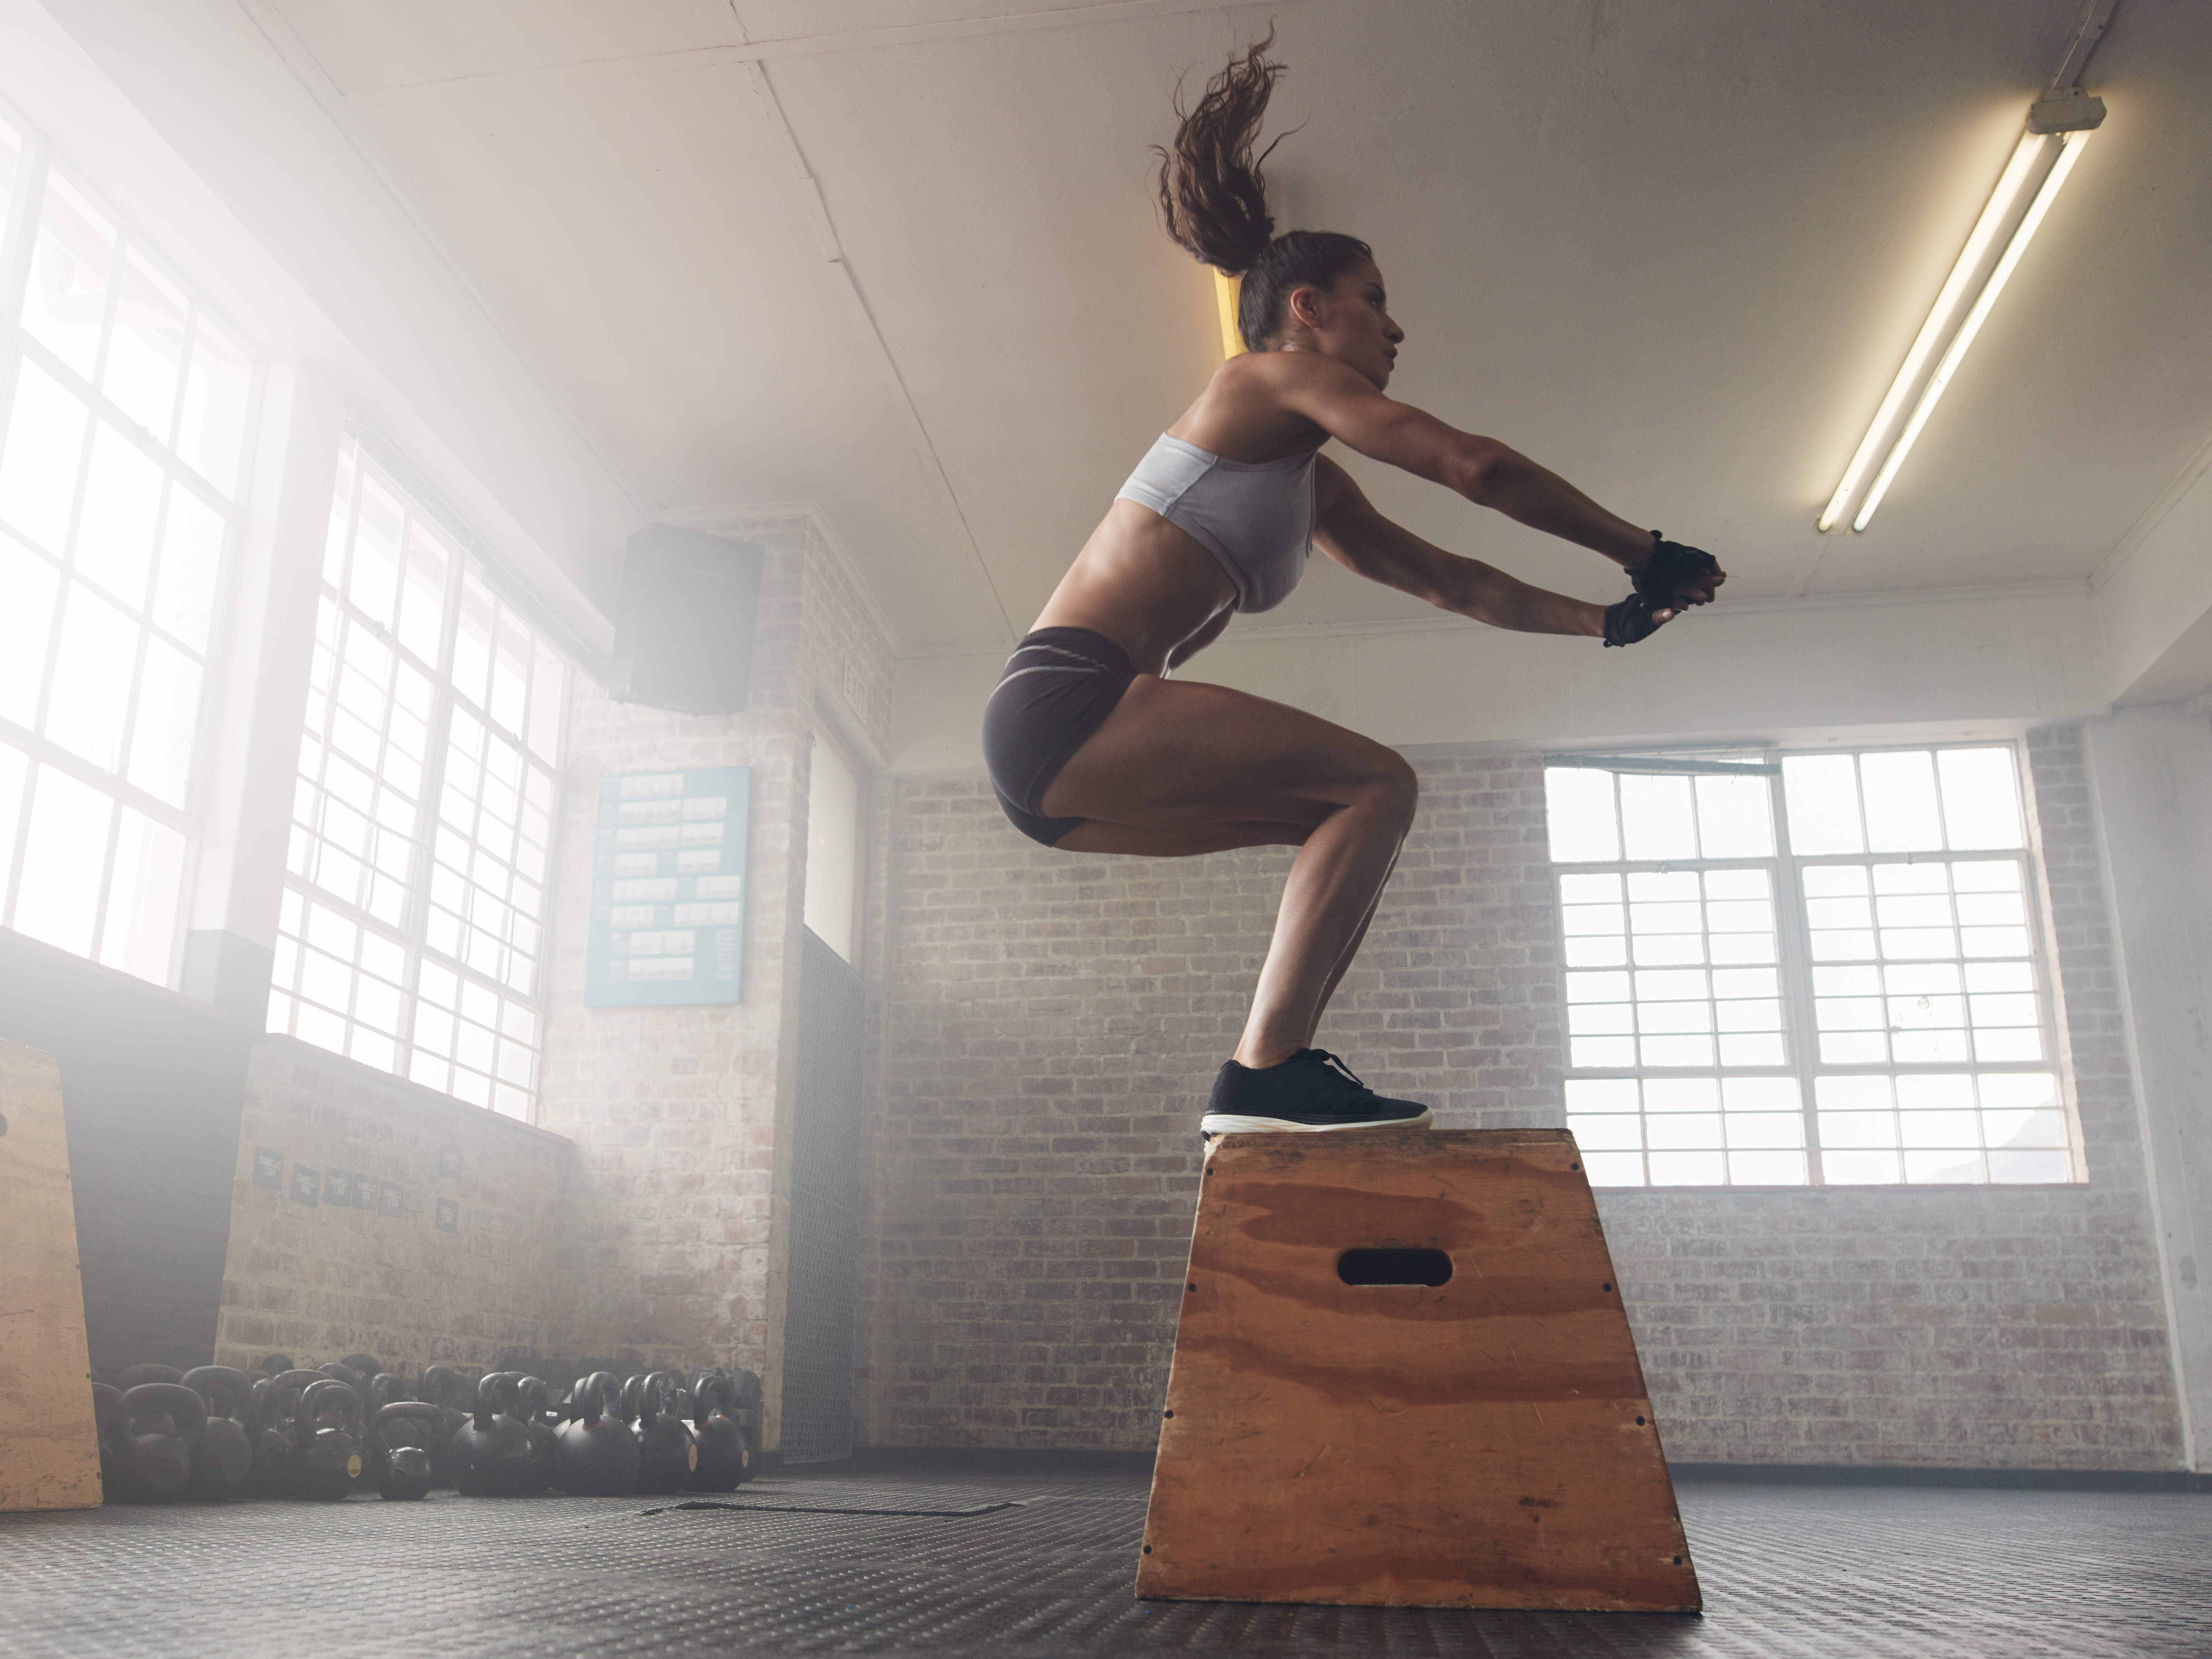 jump-box-crossfit-exercise-gym-workout-hiit